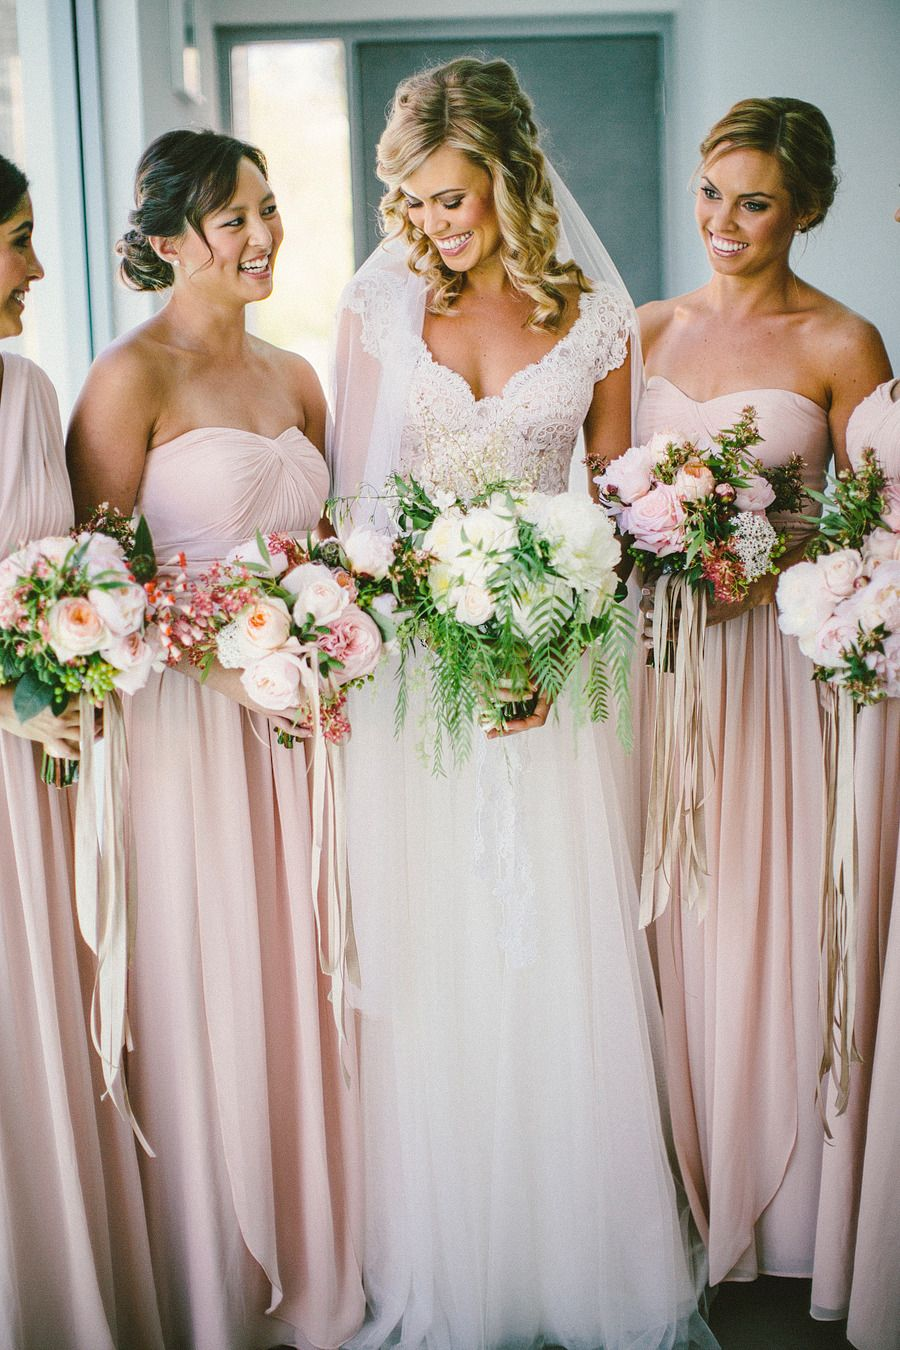 554 best bridesmaid dresses images on pinterest bridesmaid ideas 554 best bridesmaid dresses images on pinterest bridesmaid ideas bridesmaids and marriage ombrellifo Image collections